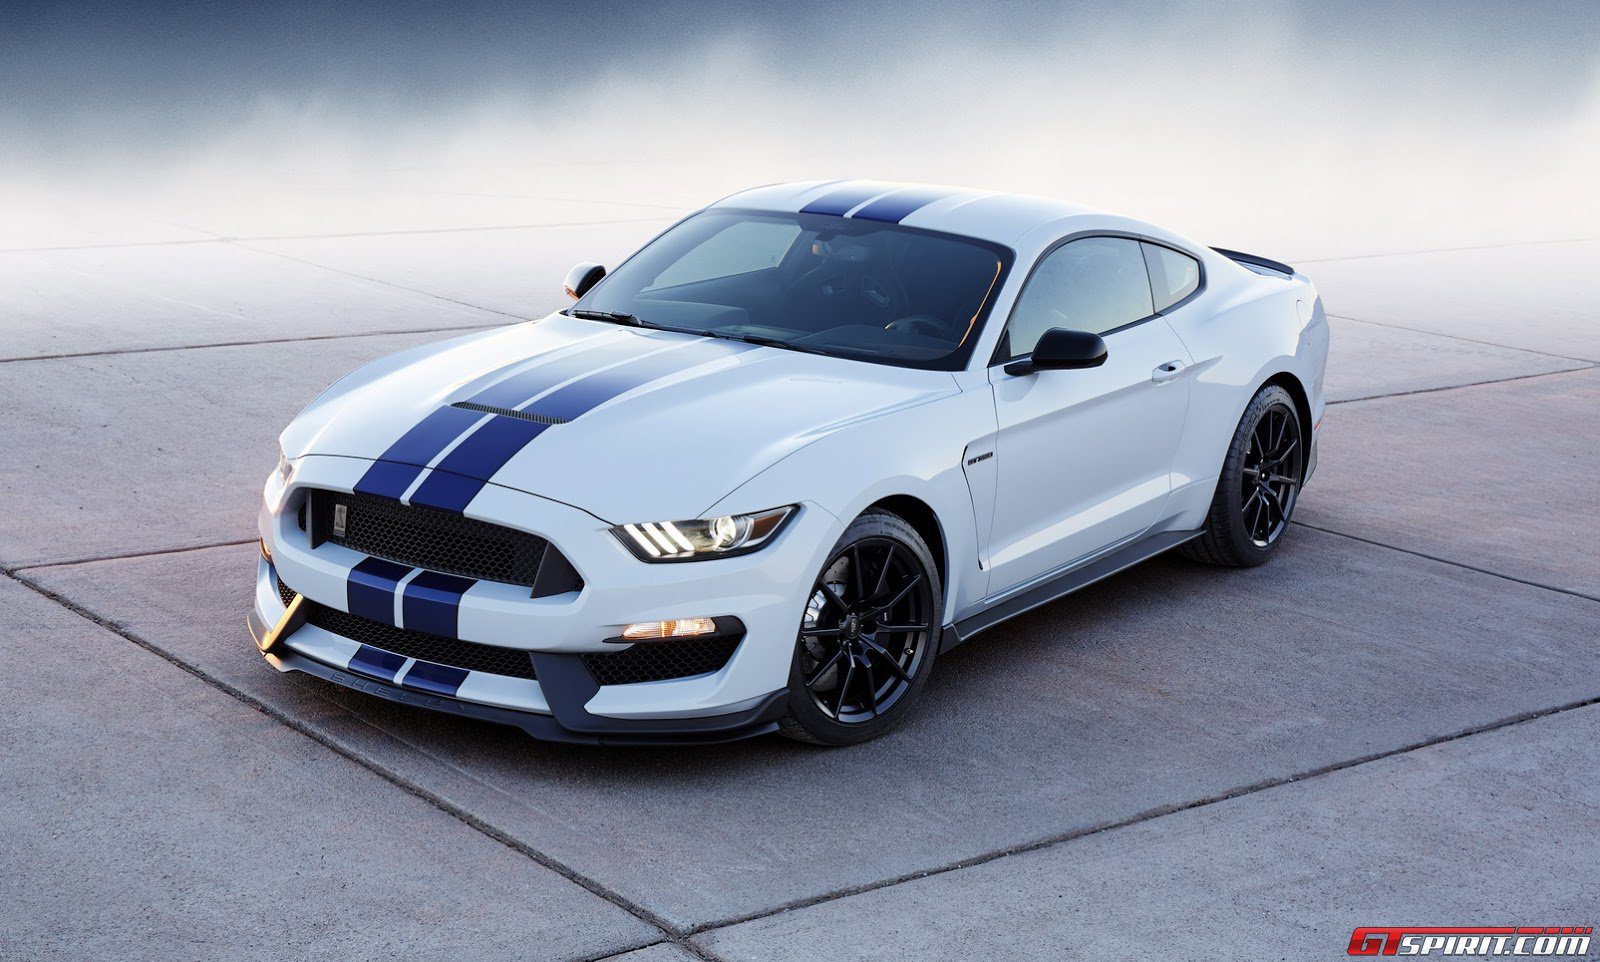 Model First Ford Mustang Shelby GT350 To Be Auctioned In January